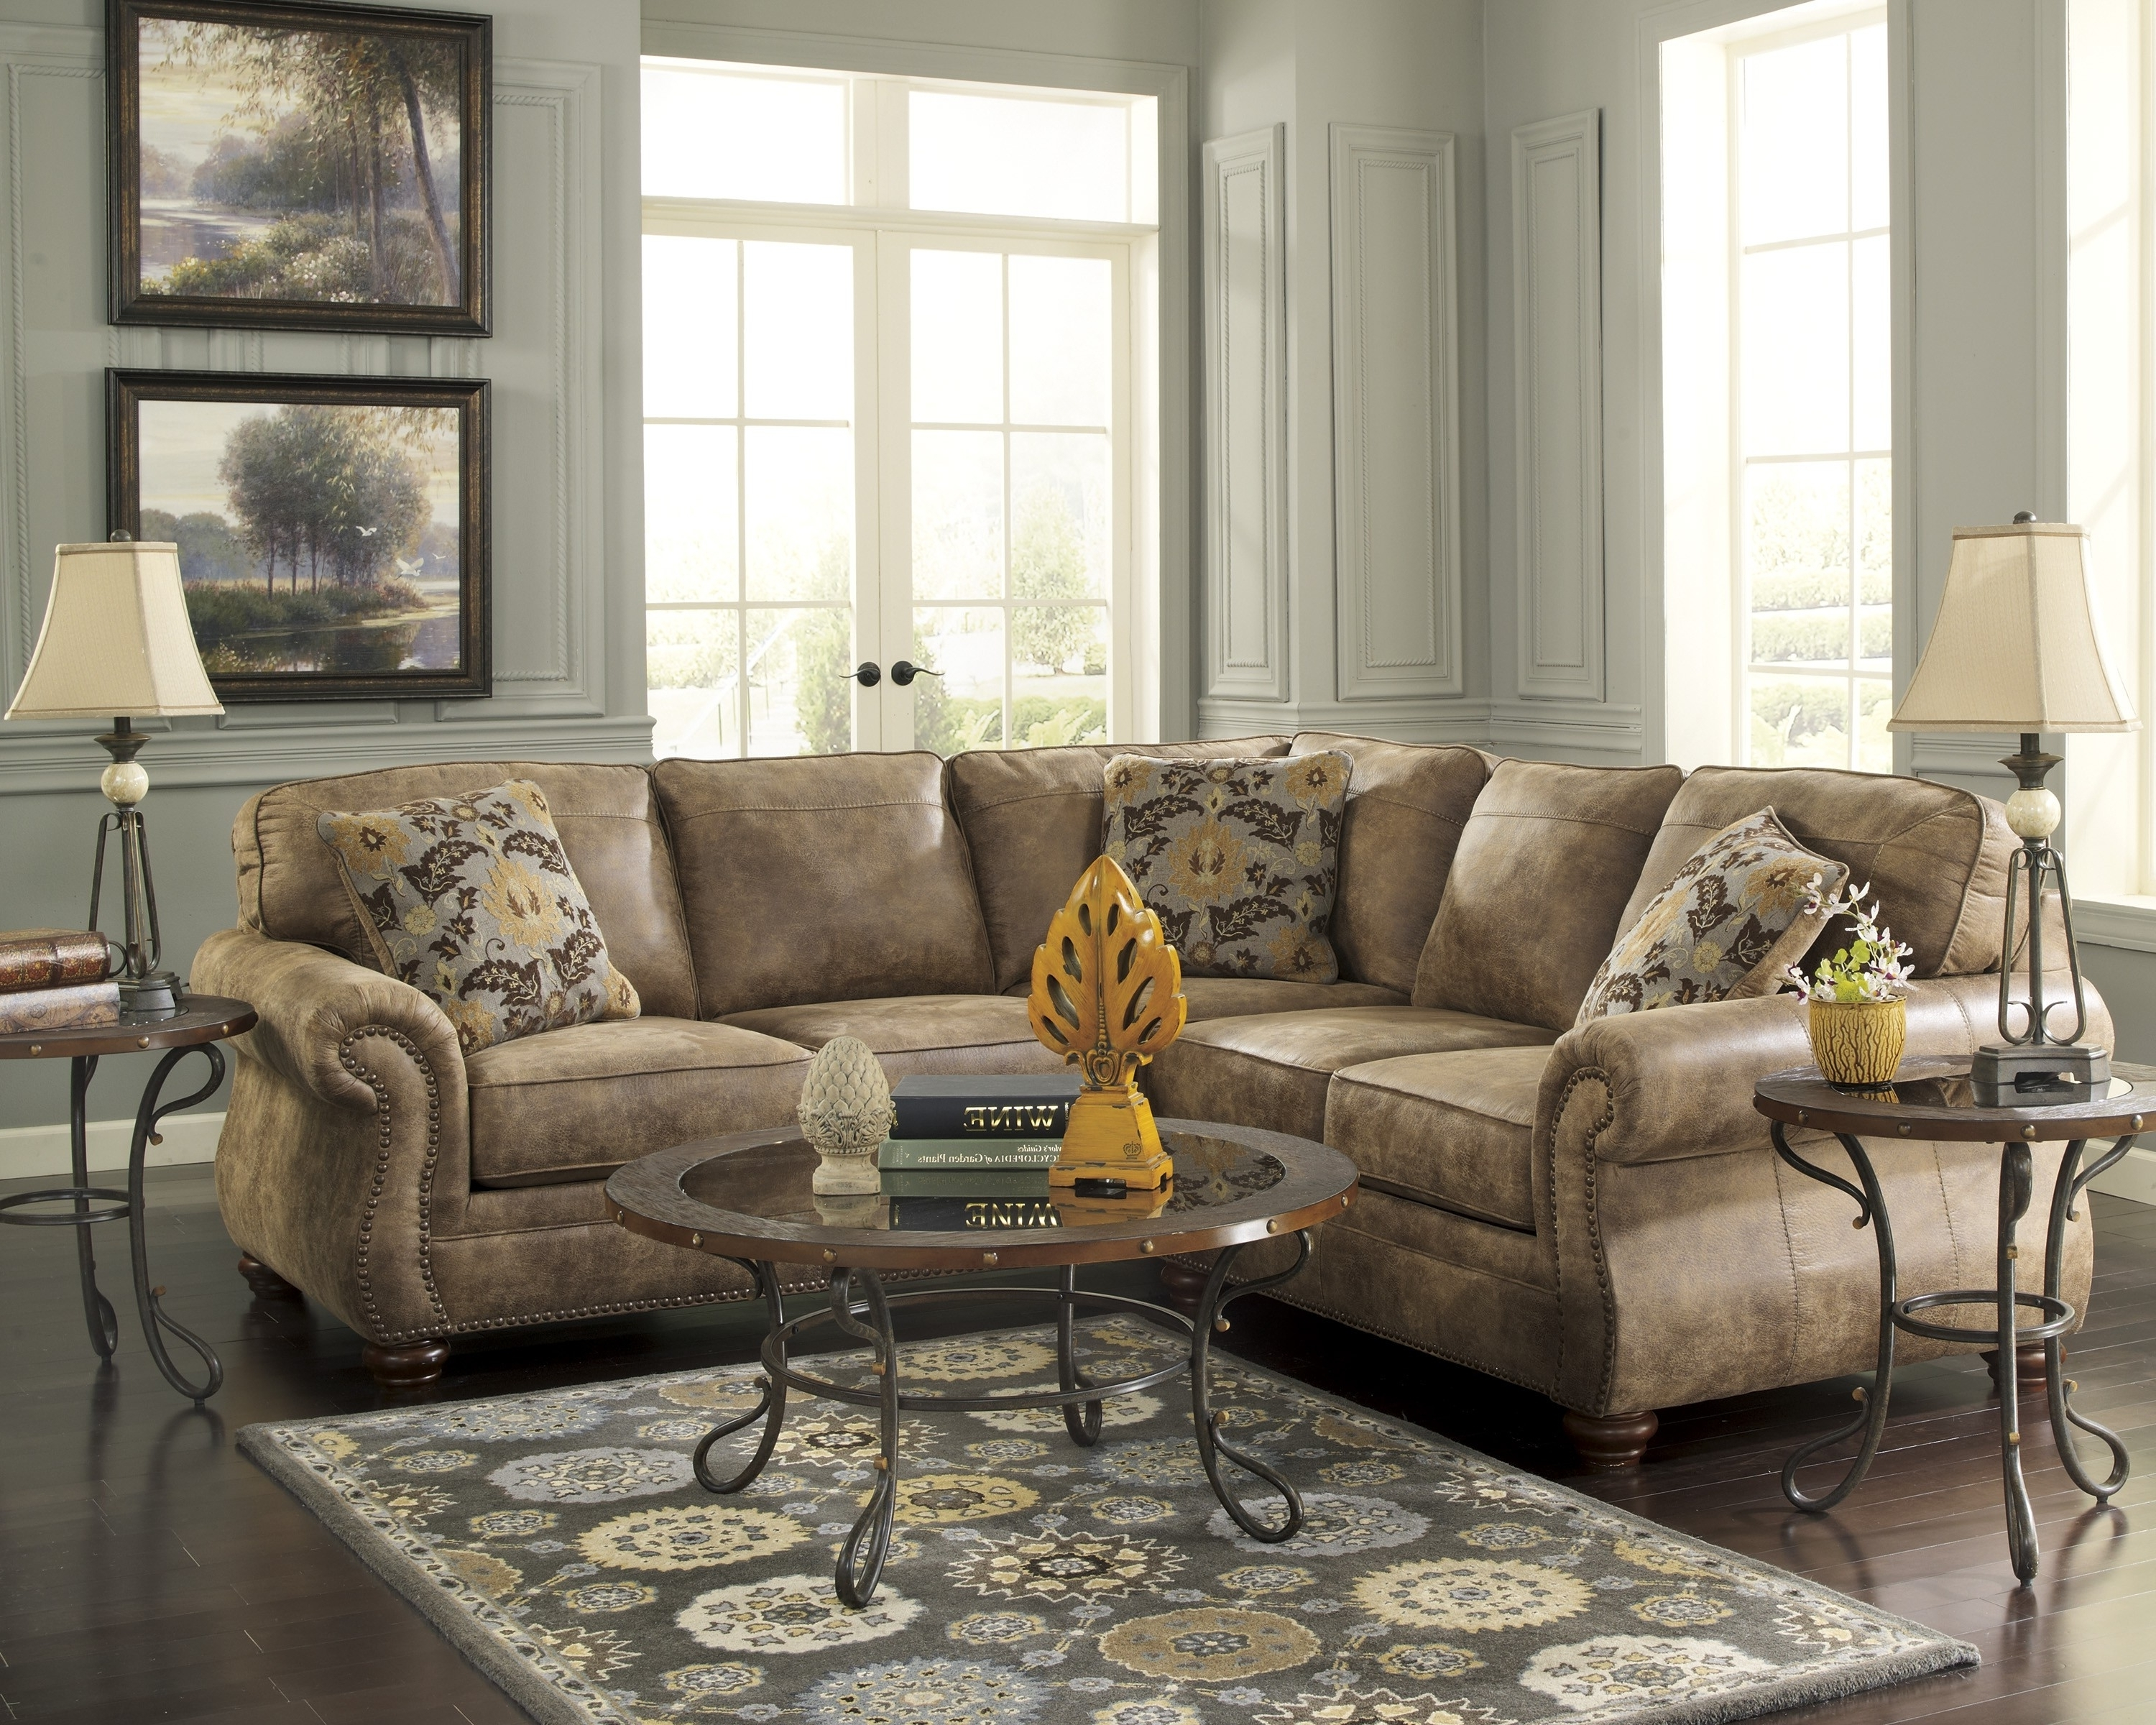 Tucson Sectional Sofas Regarding Well Known Photos Sectional Sofas Tucson – Buildsimplehome (Gallery 1 of 20)